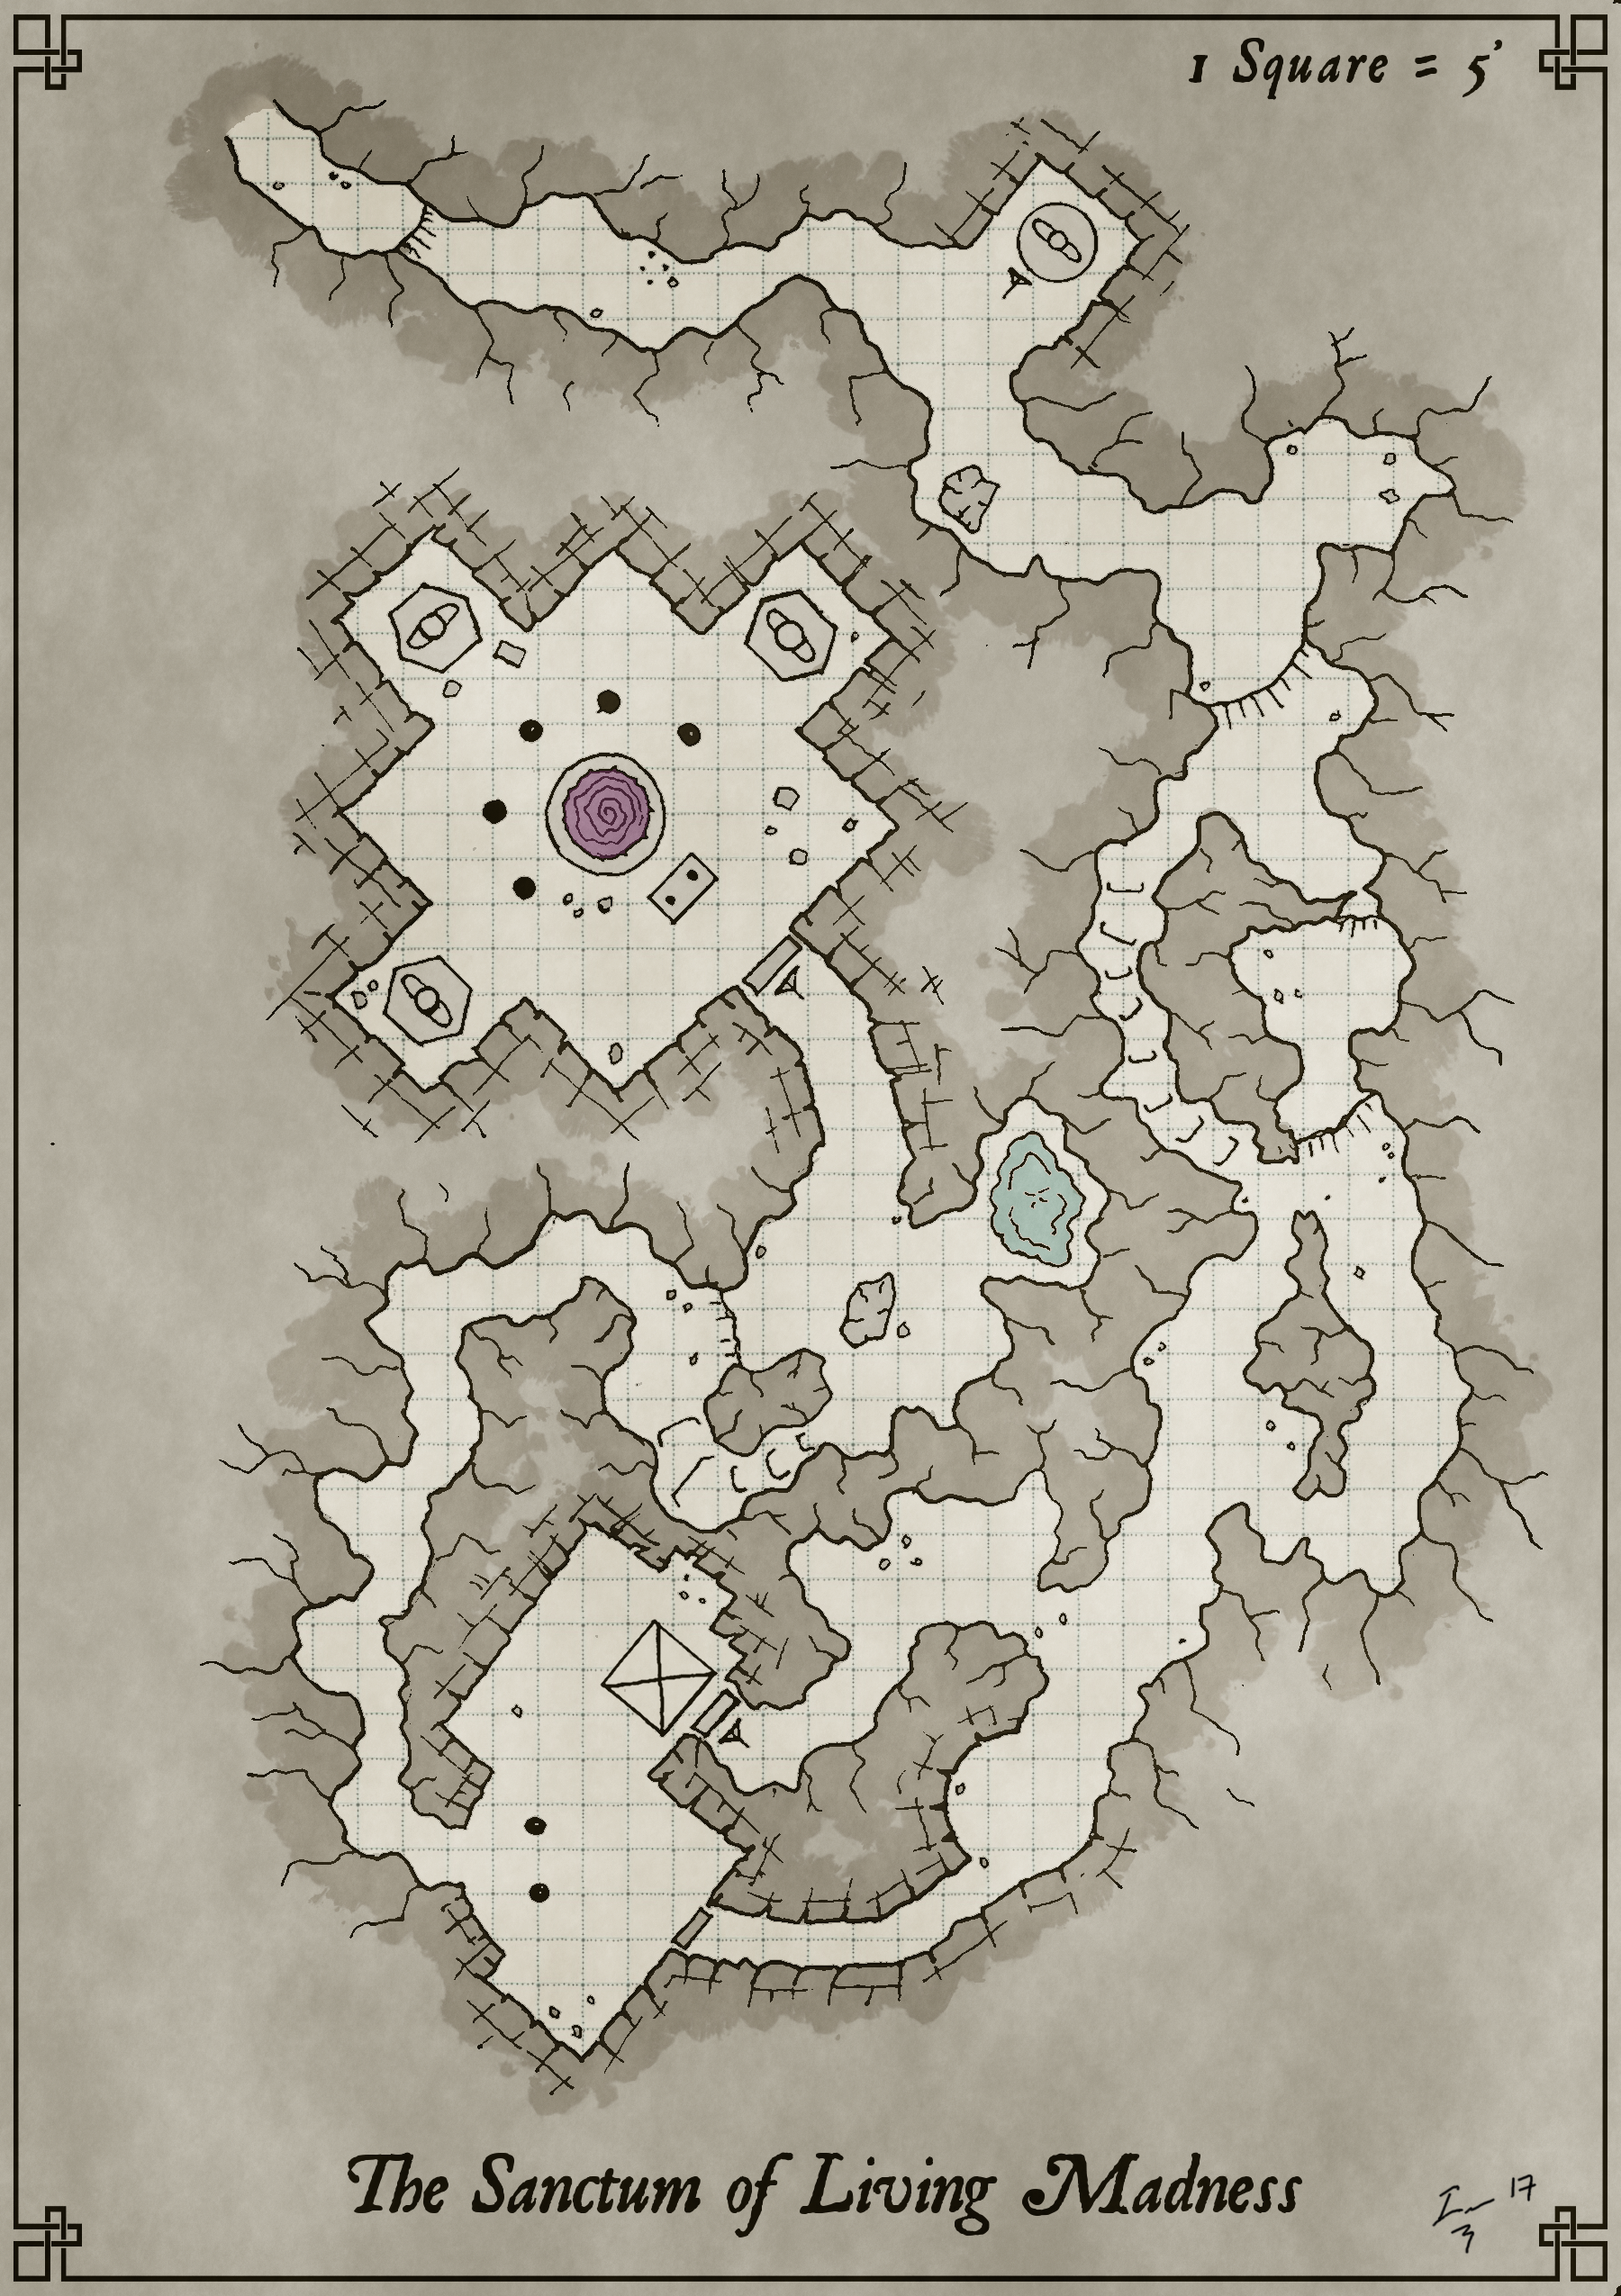 Hand Drawn Battle Map Cleaned And Colored In Gimp Free For Personal Use Fantasy Map Dungeons And Dragons Characters Dungeon Maps